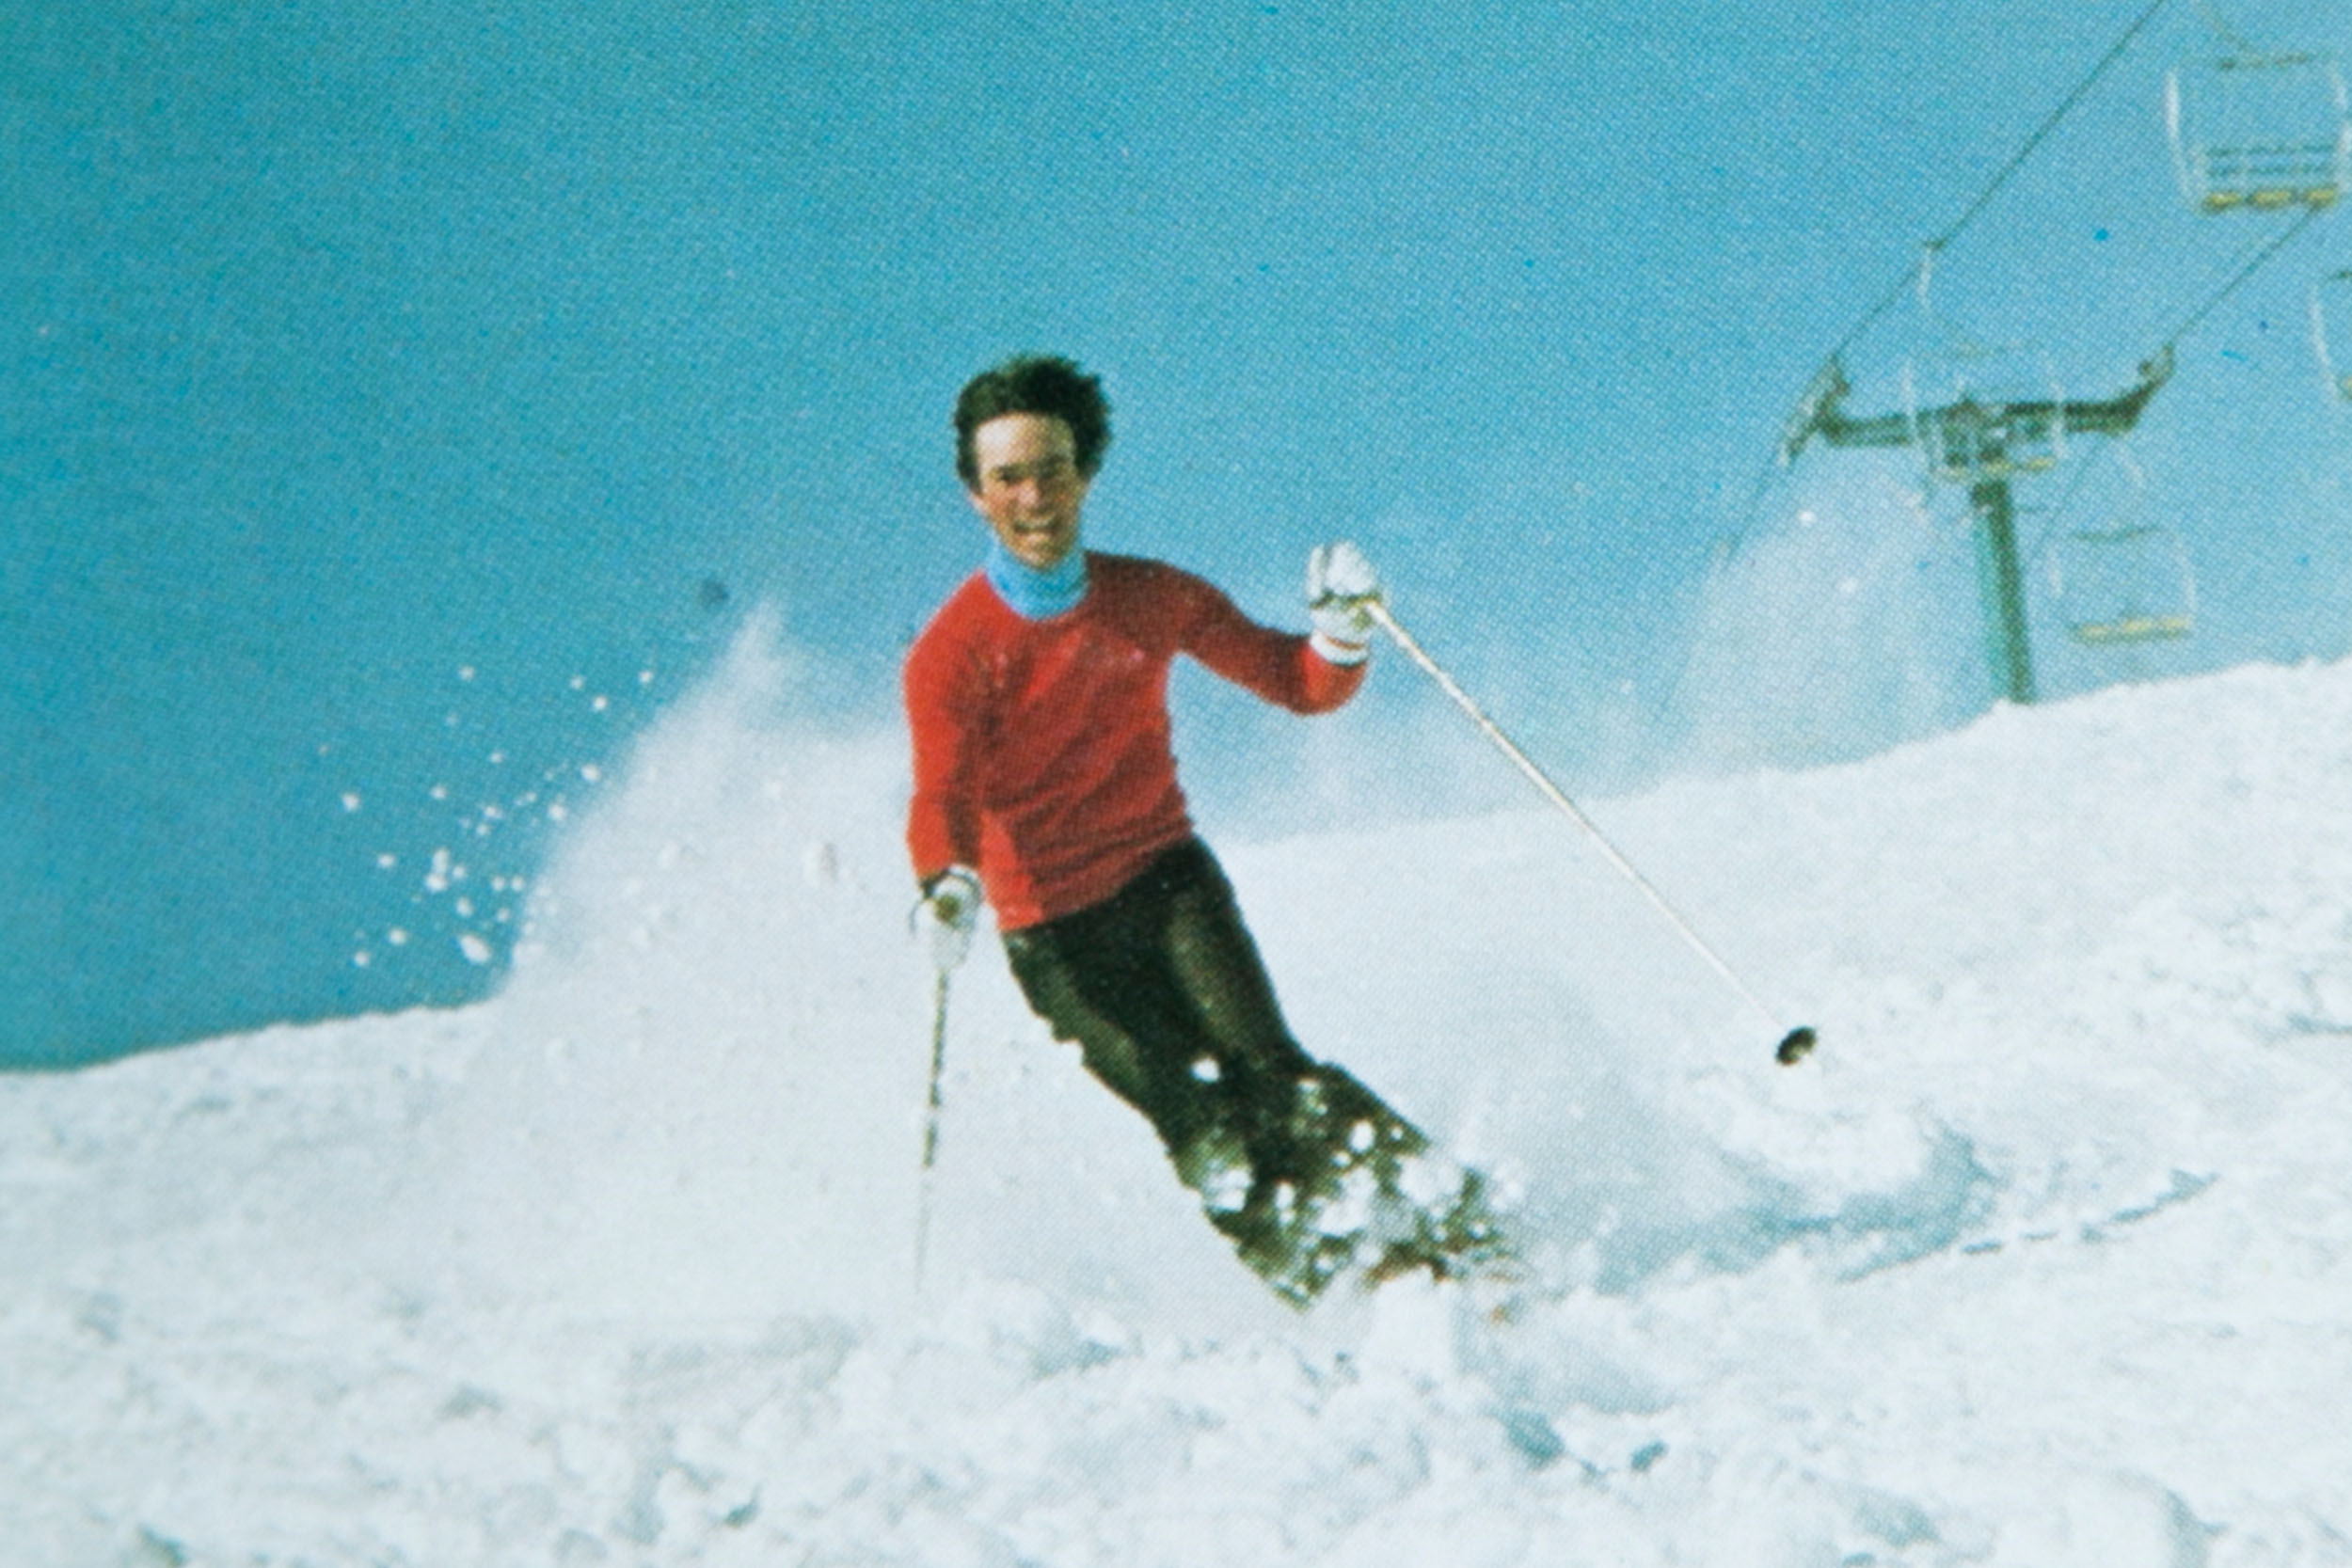 The early years at Waterville Valley